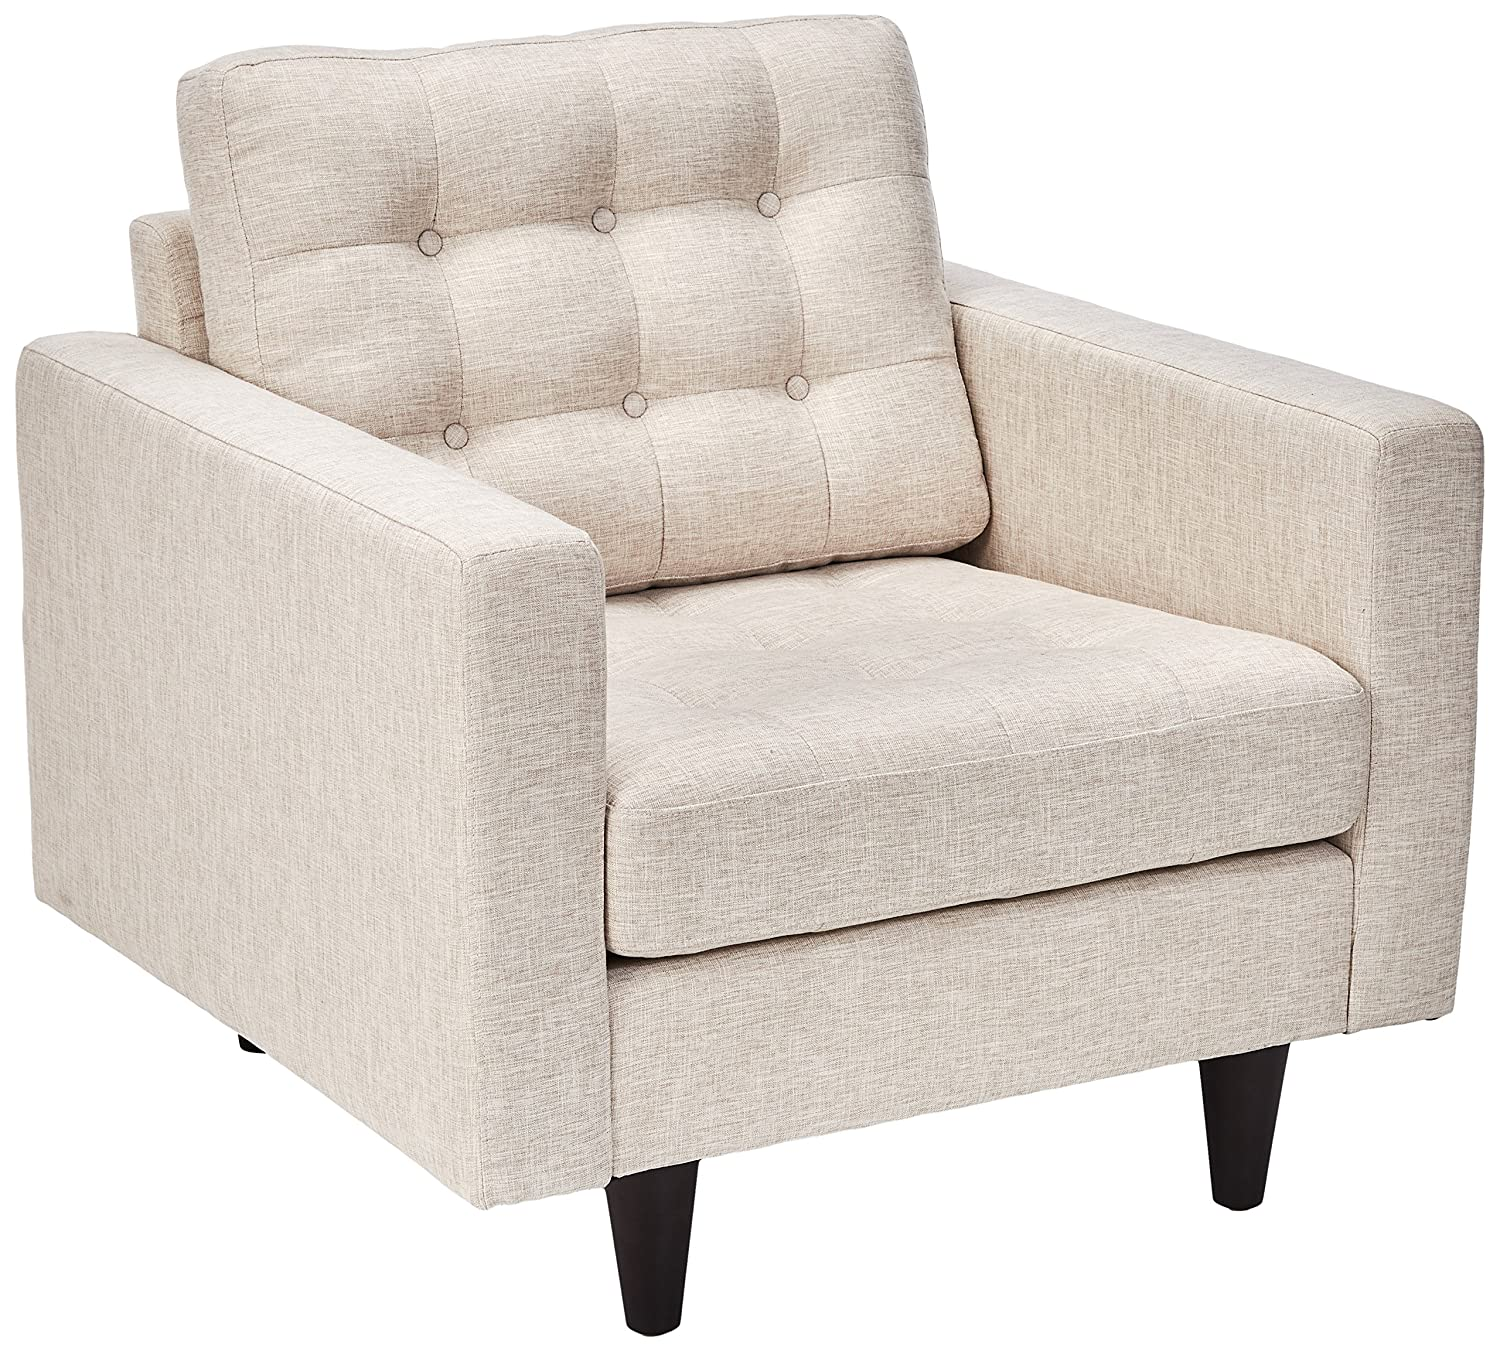 Modway EEI-1013-BEI Empress Mid-Century Modern Upholstered Fabric Accent Arm Lounge Chair Beige Modway Inc.